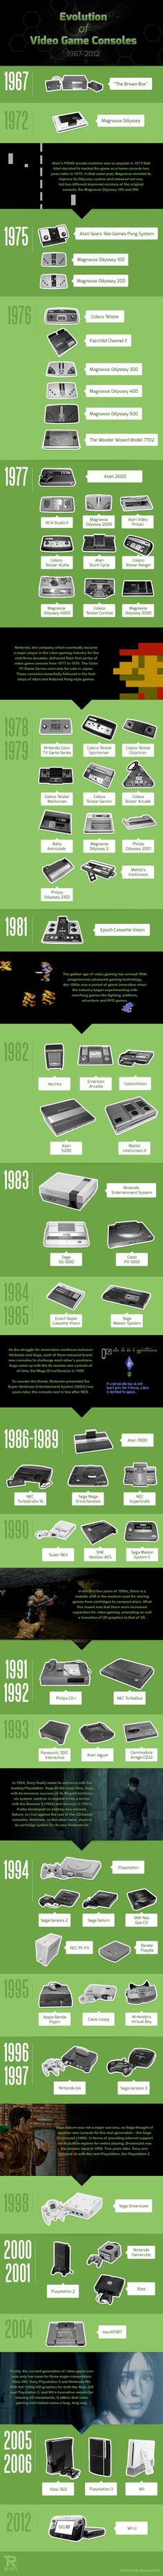 RIPT Apparel, the premier site for video game t-shirts, takes you on a journey though the evolution of video game consoles from The Brown Box in 1967